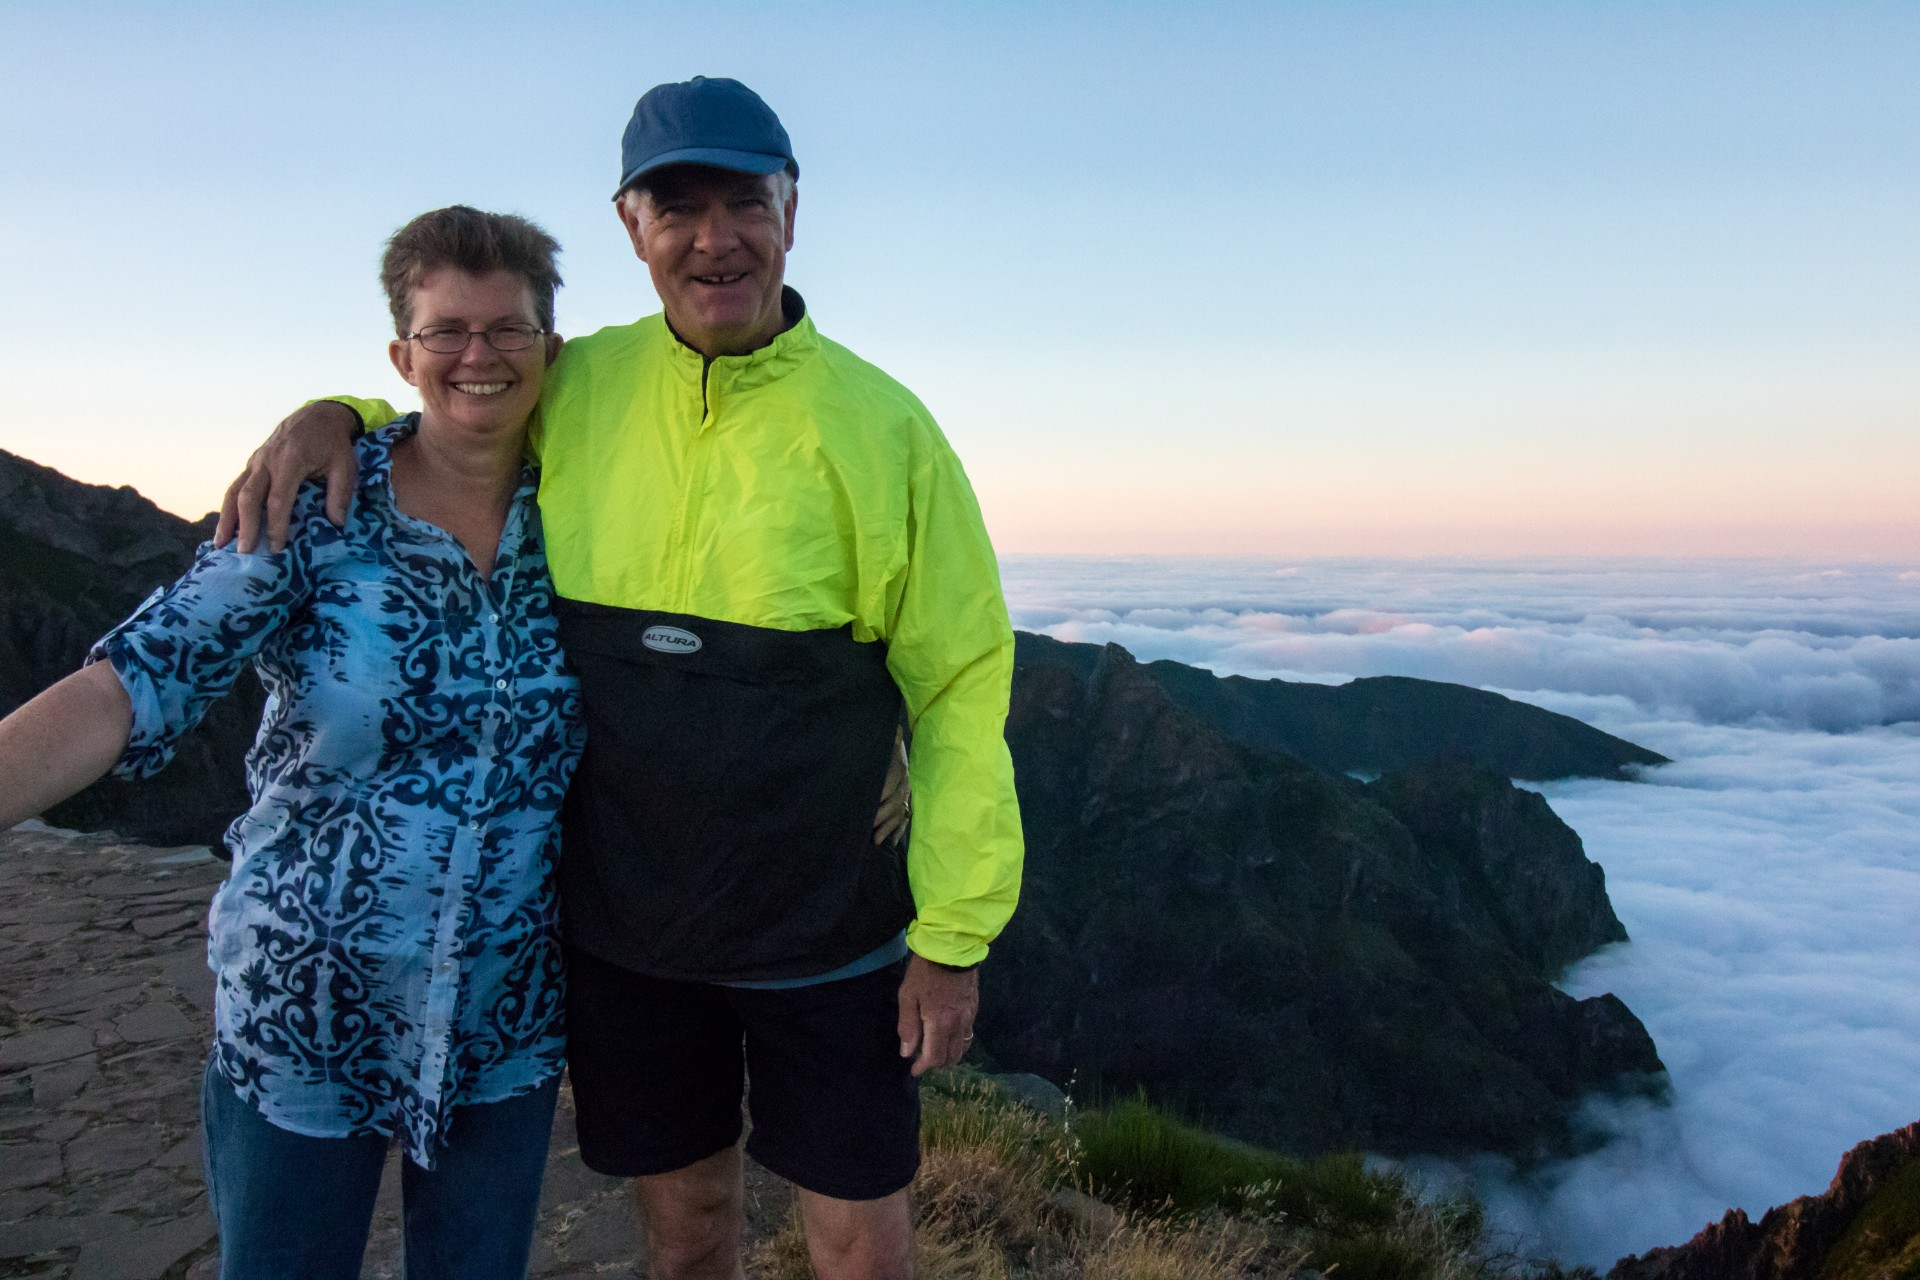 Man and woman husband and wife hiking mountain clouds Madeira Portugal Pico do Ariero travel goals